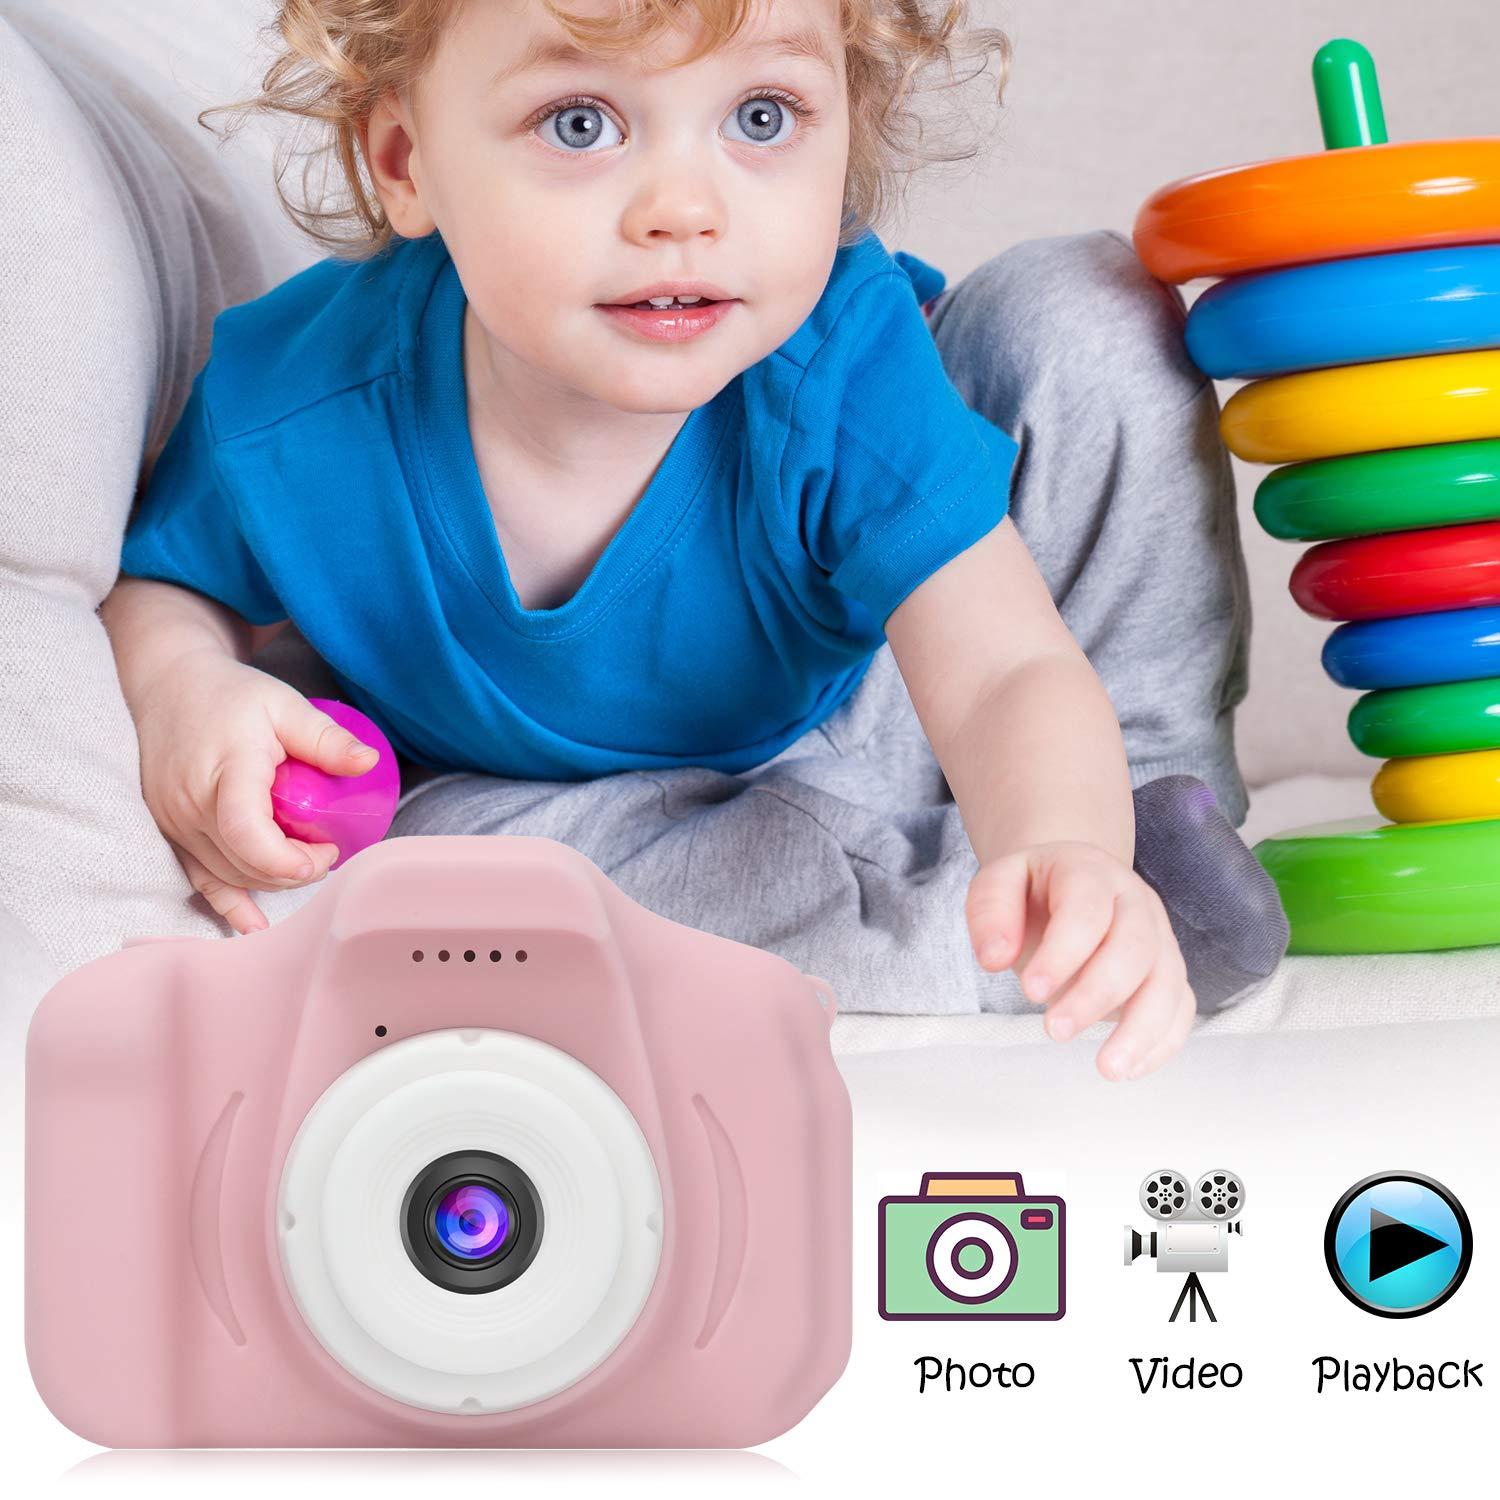 DDGG Kids Digital Camera for Girls Age 3-10,Toddler Cameras Child Camcorder Mini Cartoon Pink Rechargeable Camera Shockproof 8MP HD Children Video Record Camera (16GB Memory Card Included) by DDGG (Image #6)